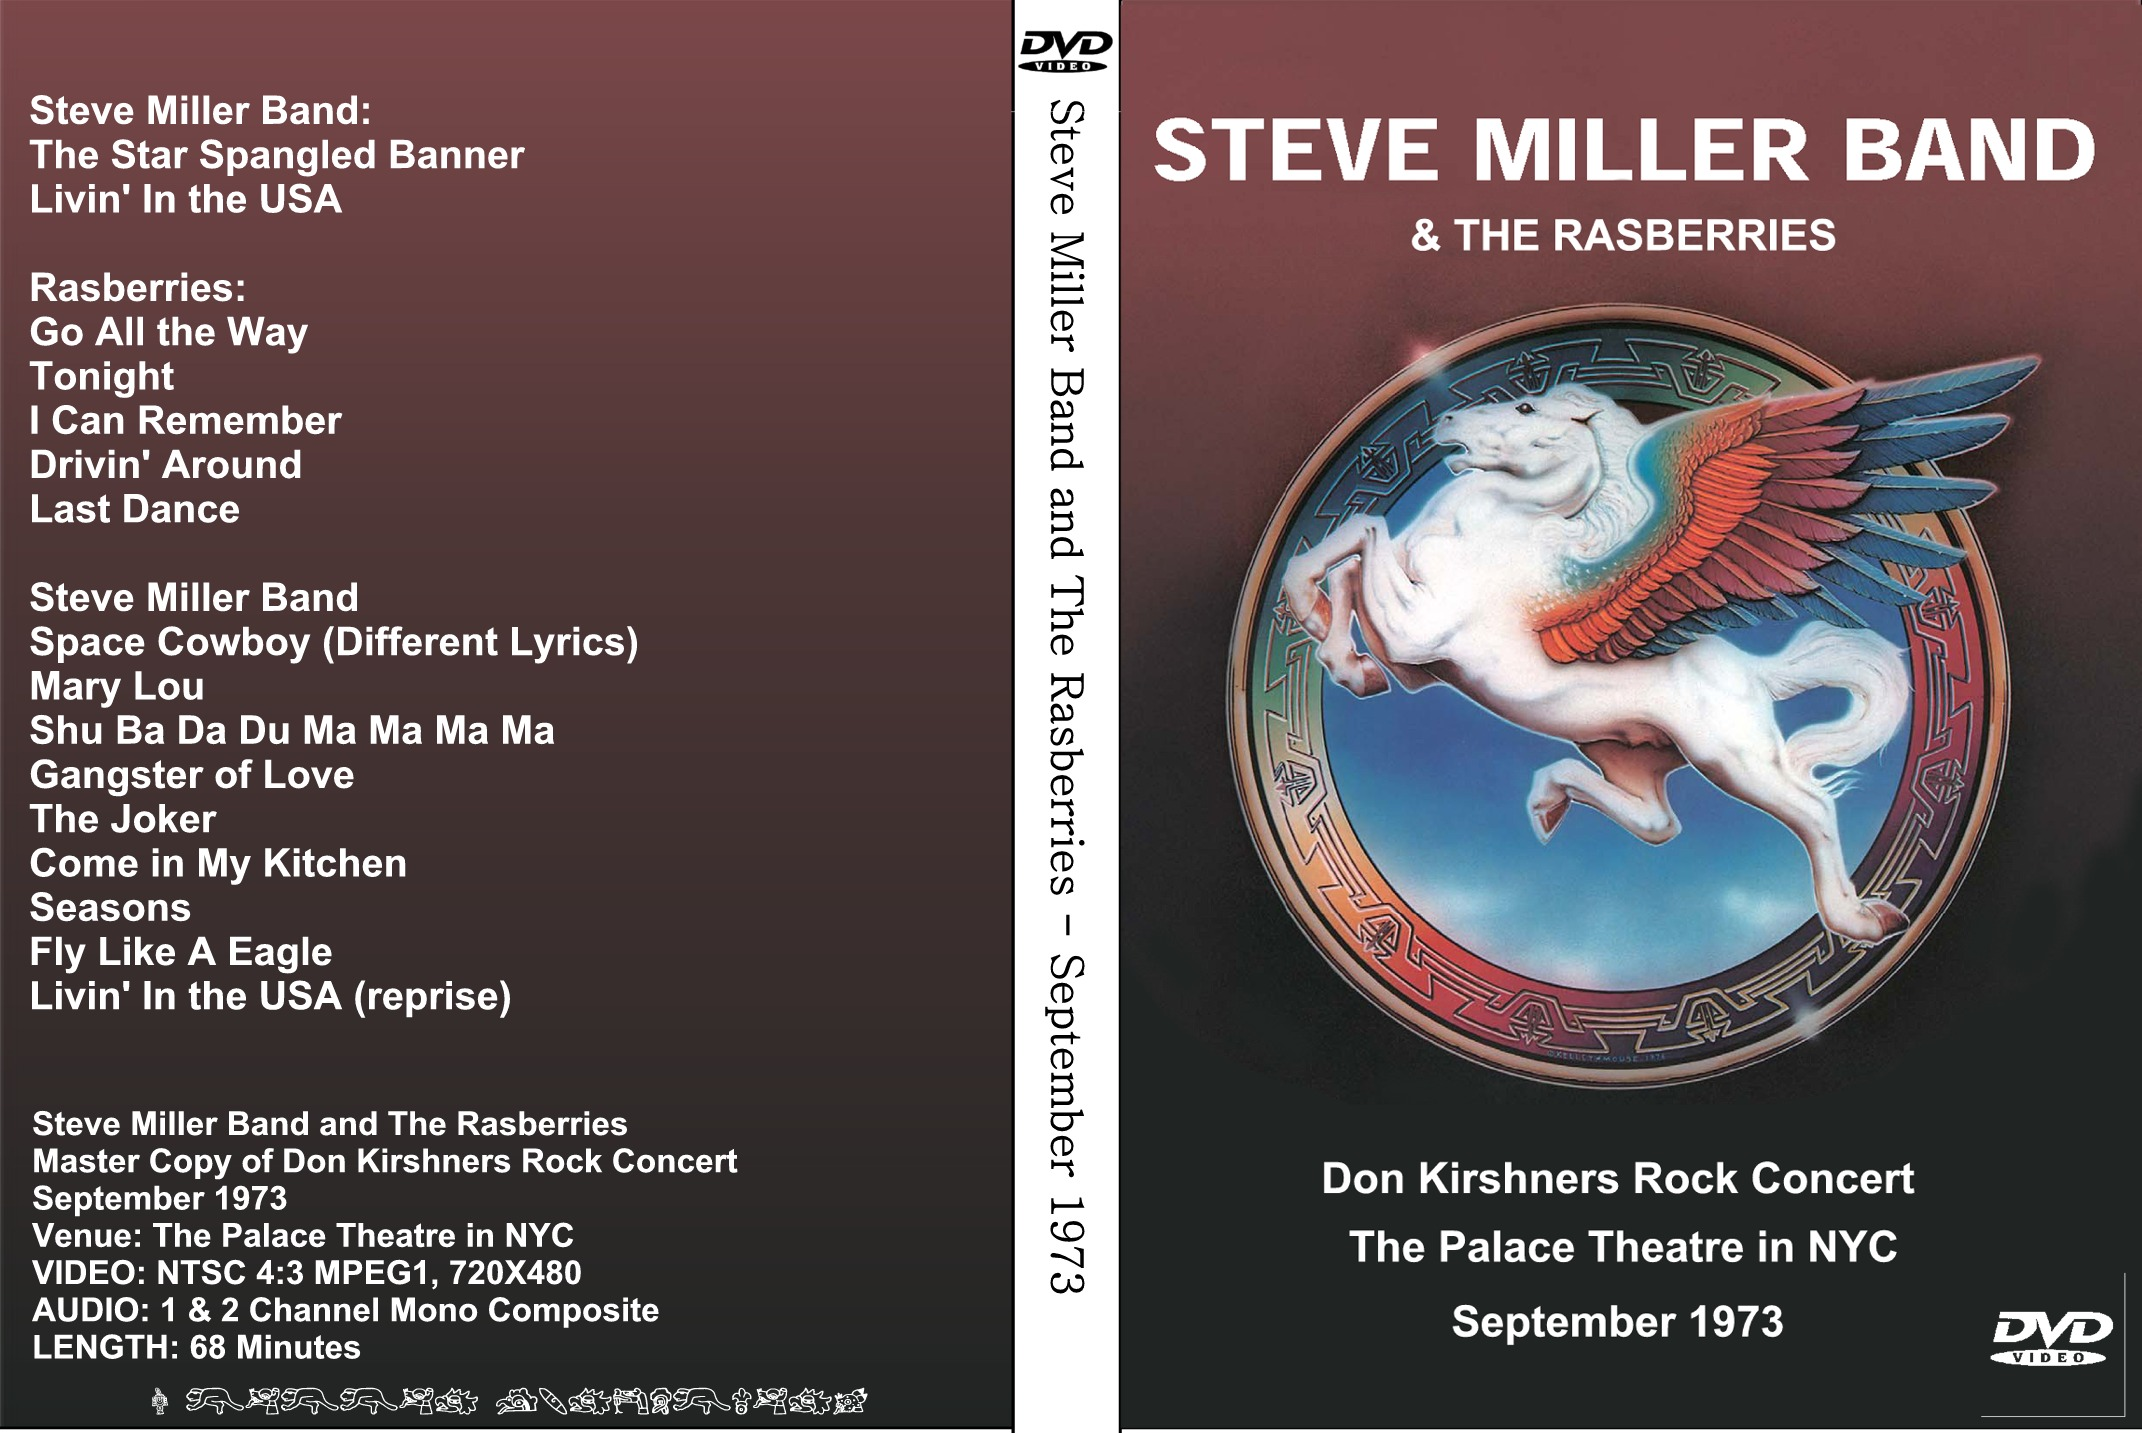 Steve Miller Band and The Raspberries - Don Kirshner's Rock Concert (1973) DVD Full Show